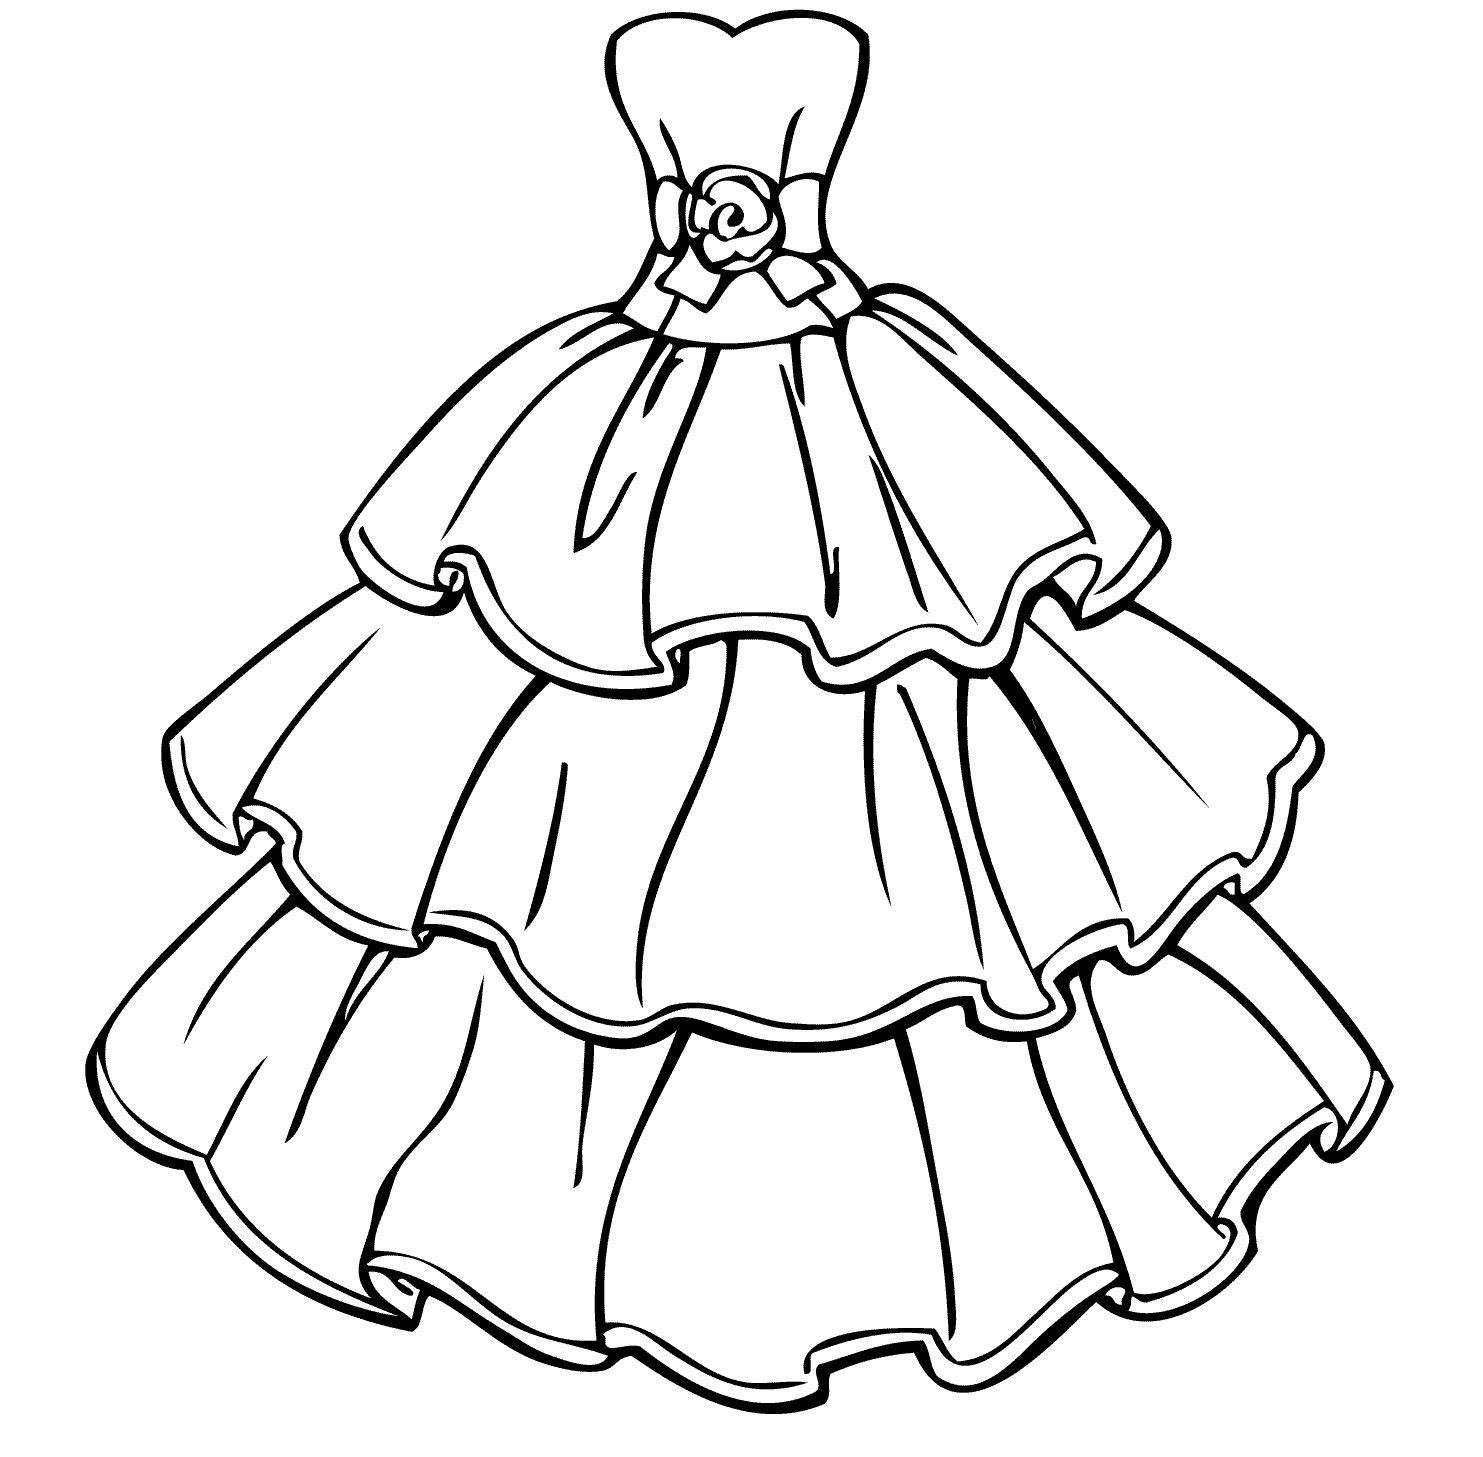 1483x1457 Ball Gown Coloring Page For Girls Elegant Drawn Gown Colouring